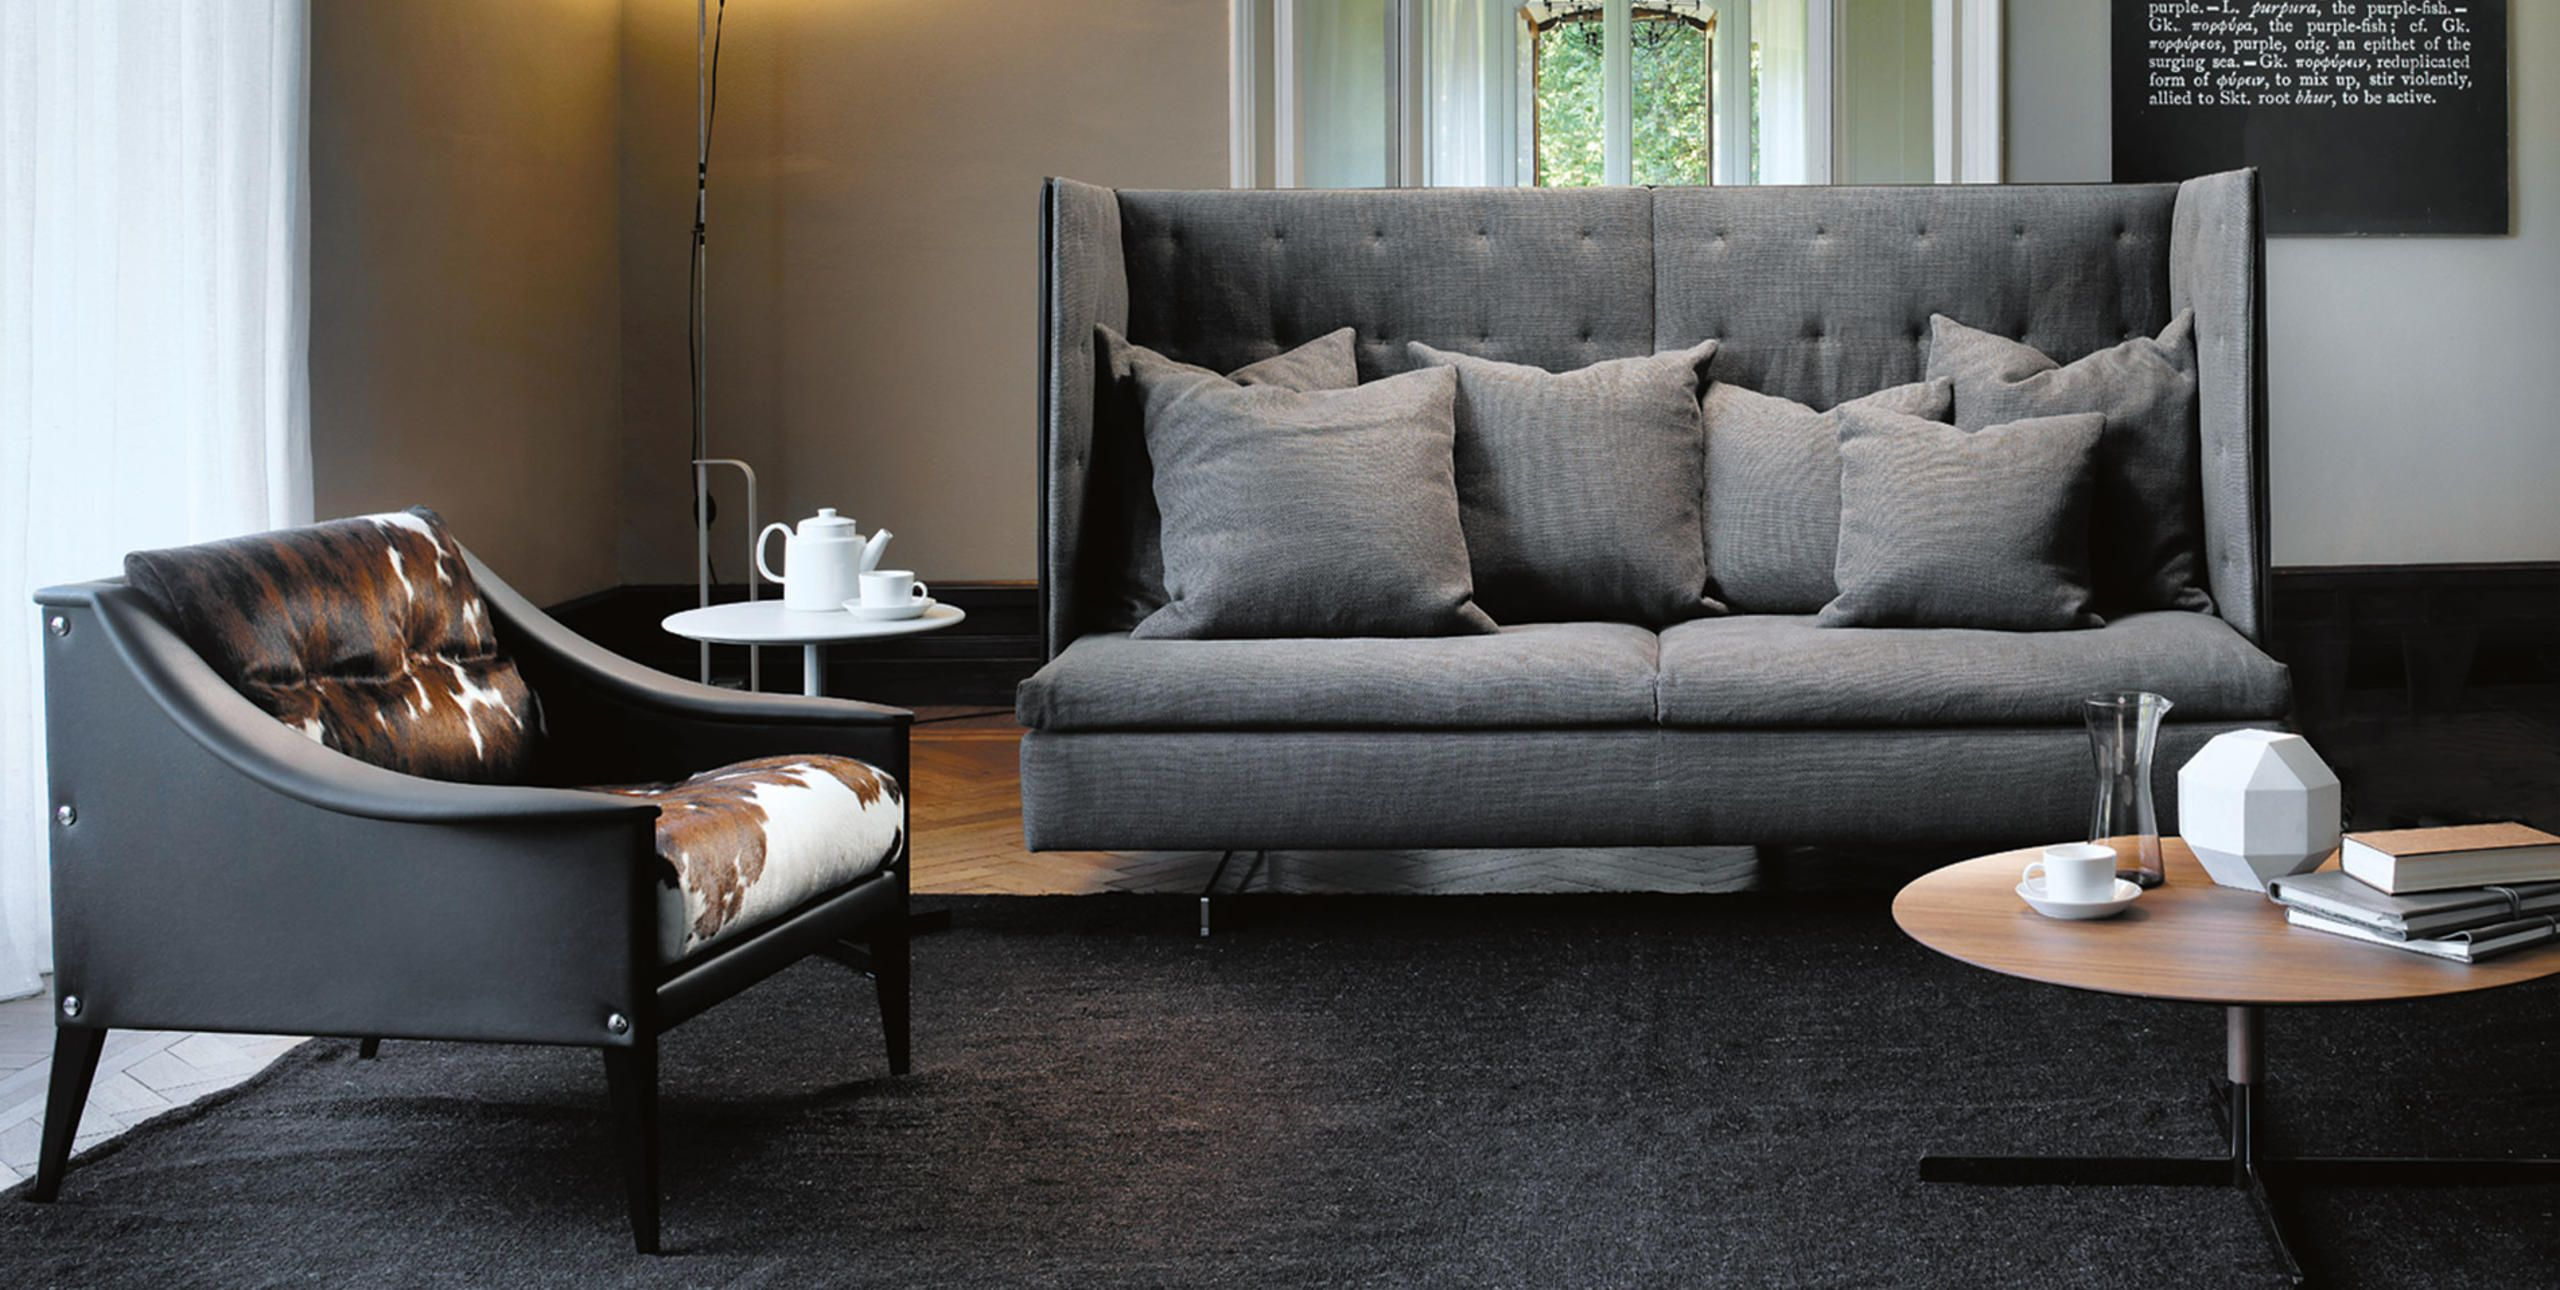 Grantorino hb sofa by poltrona frau via designresource for Chaise longue torino